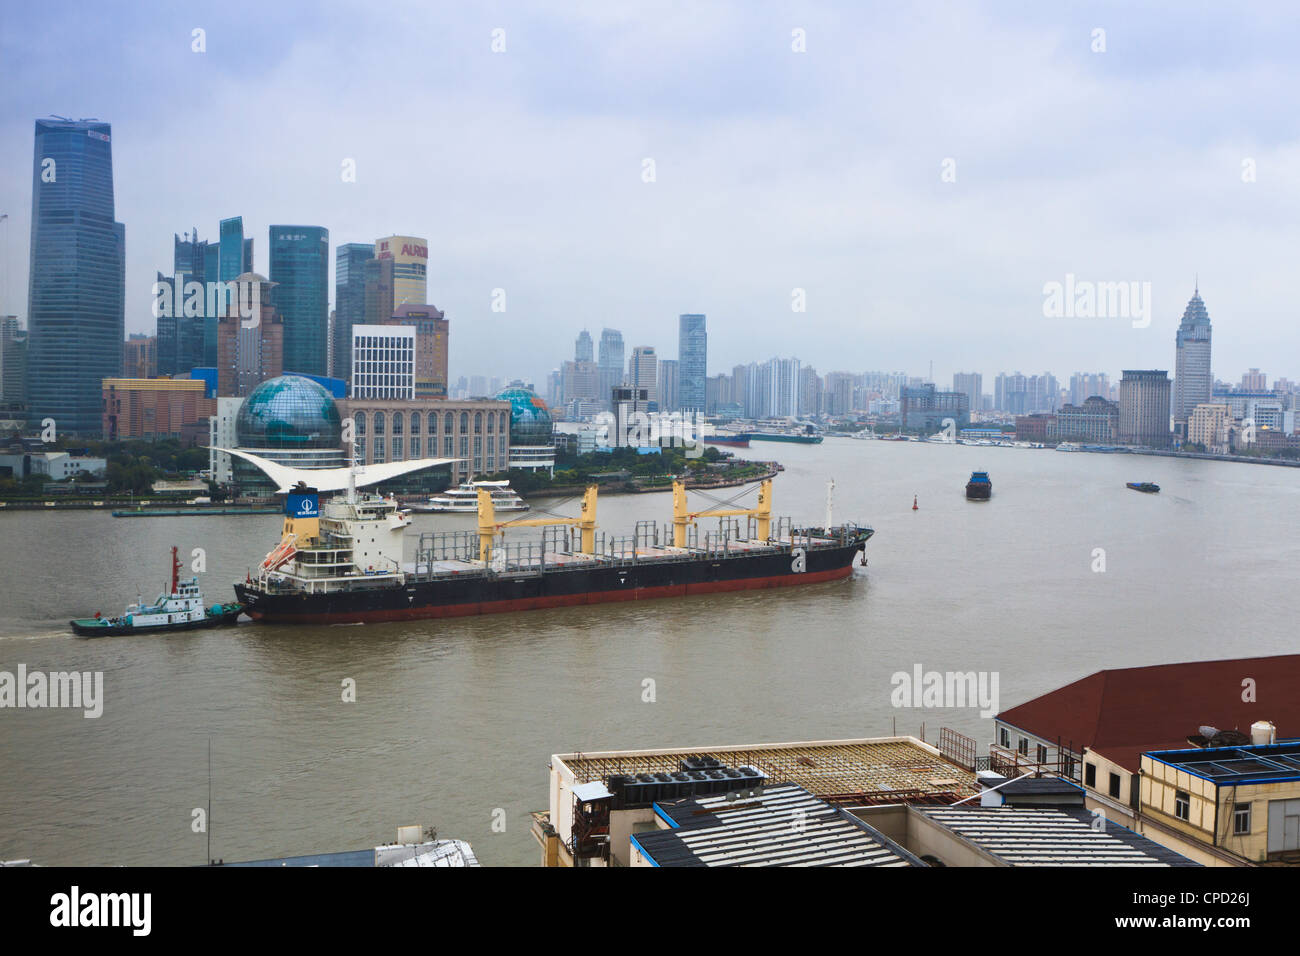 Large transport ship and tug on the Huangpu River that runs through Shanghai, China, Asia - Stock Image